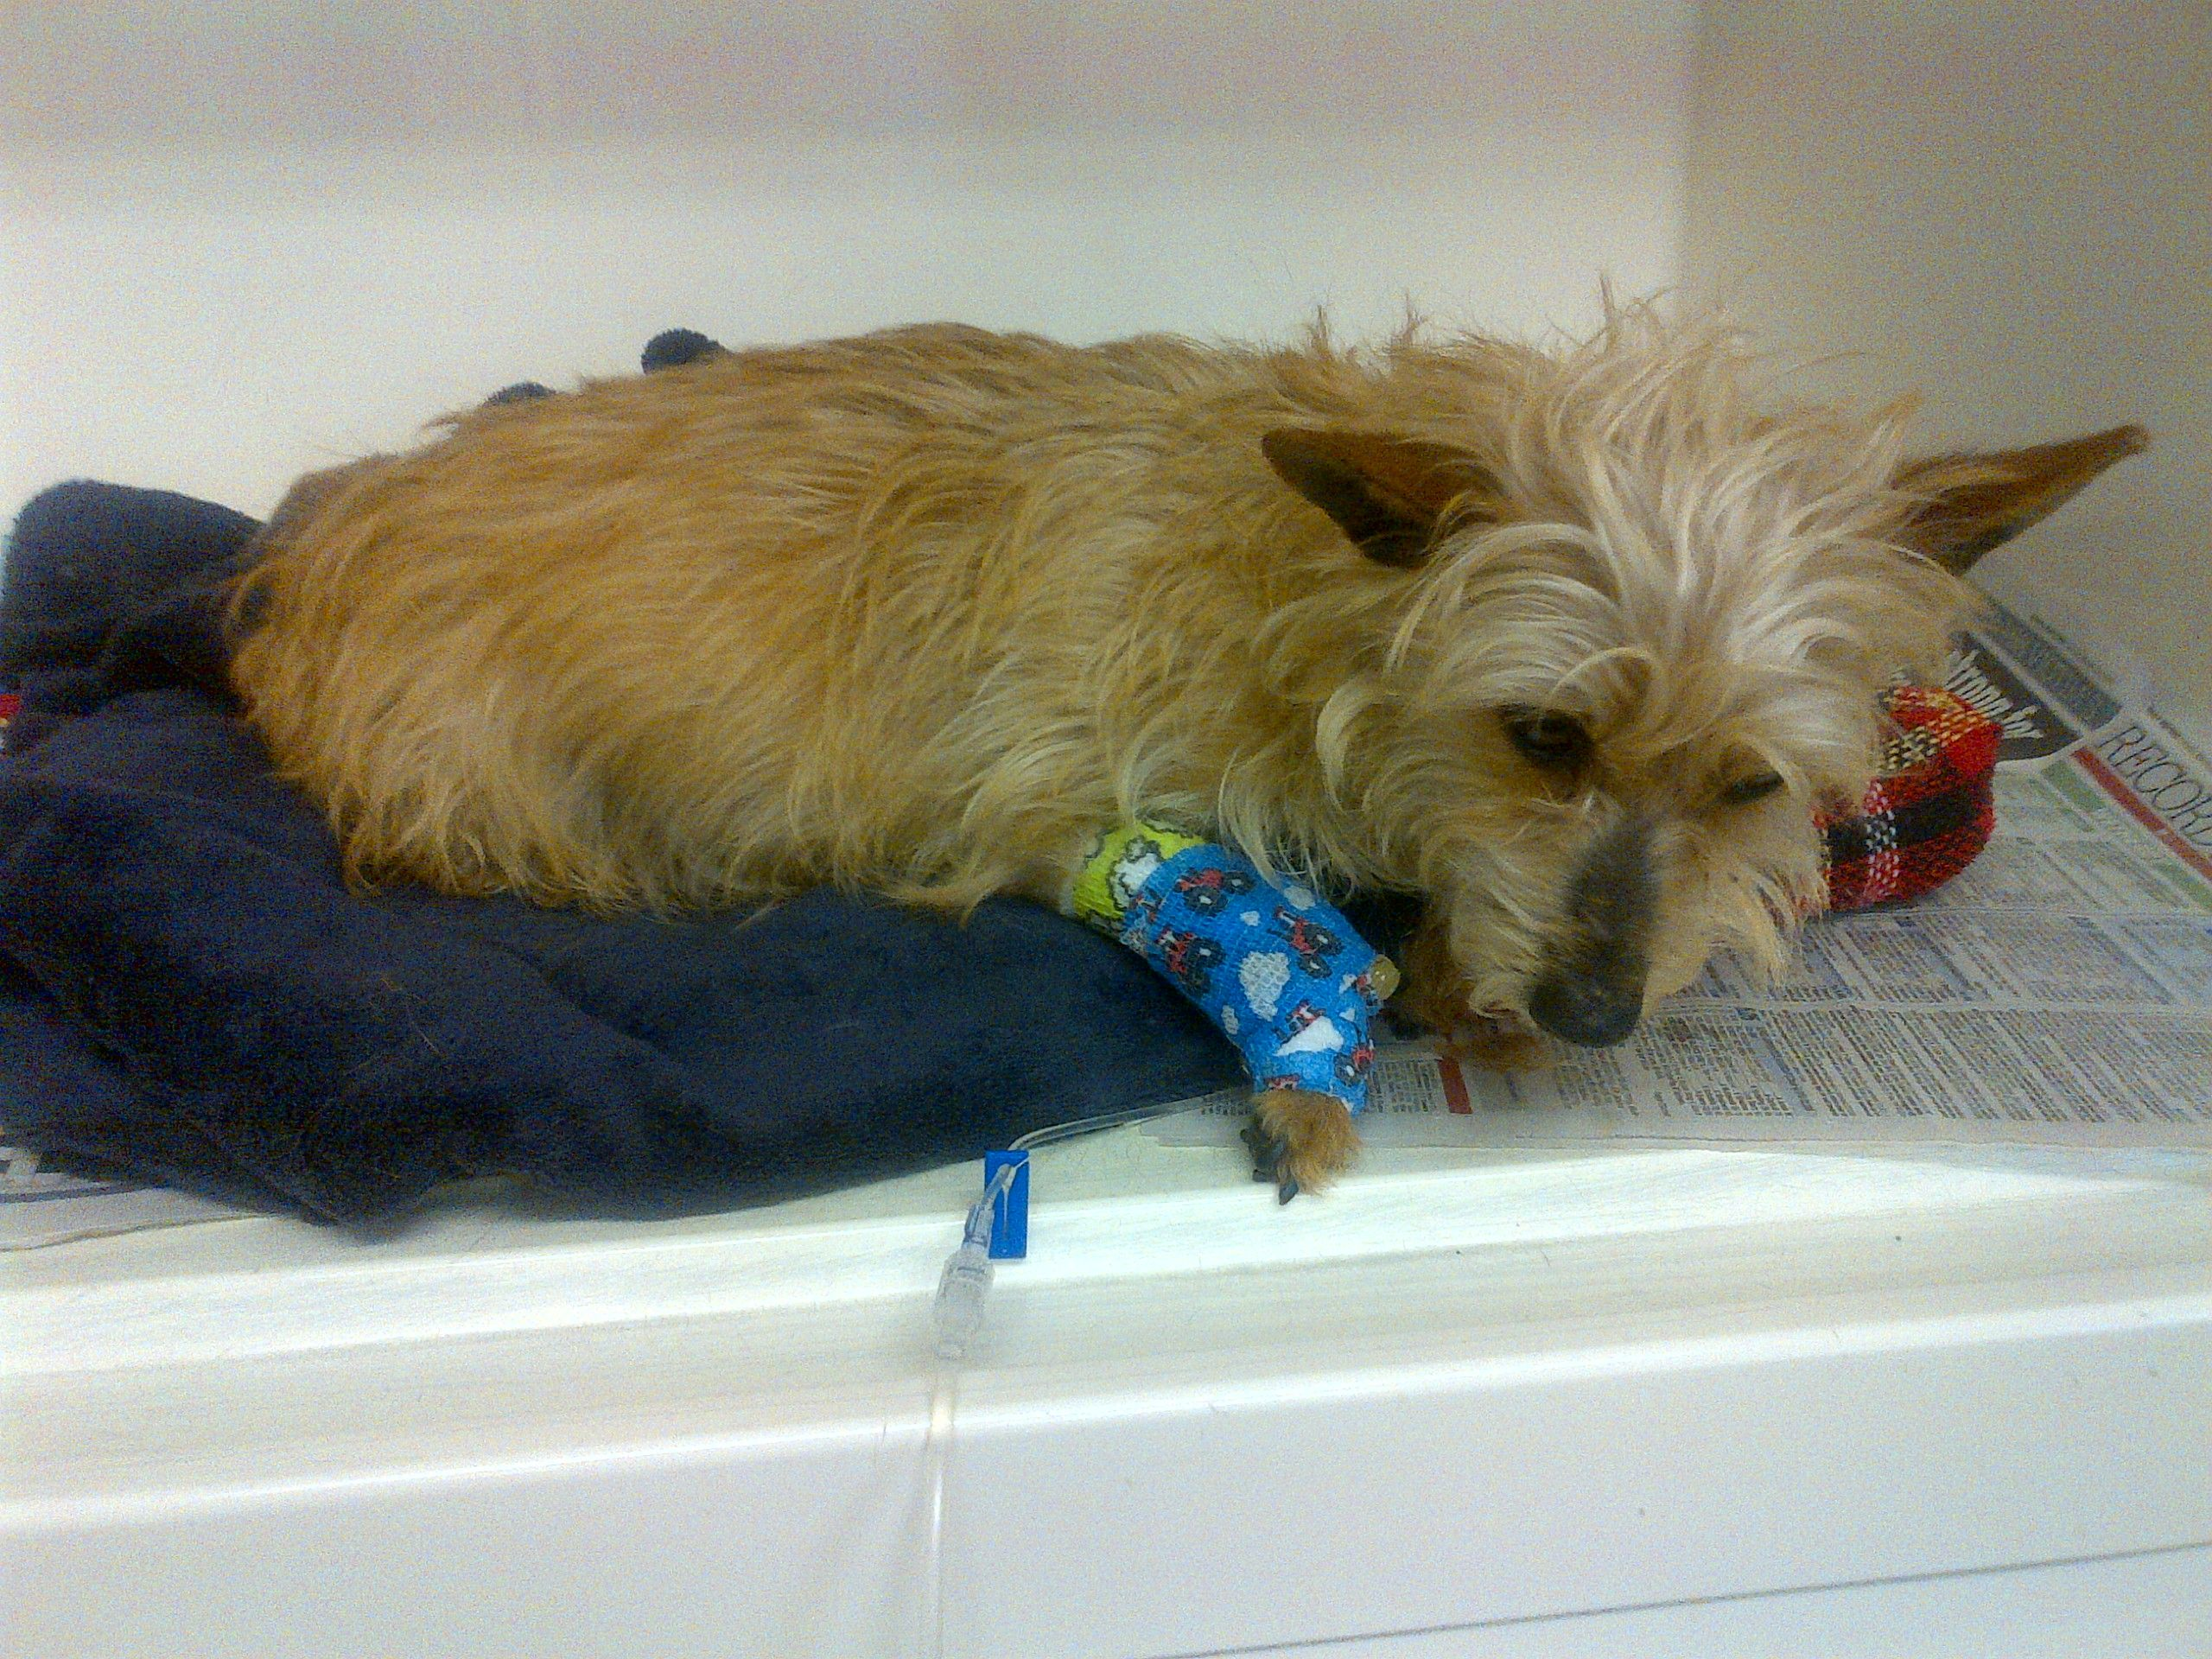 Scotland: Pregnant Dog Tied To A Bin With A Cable Round ...